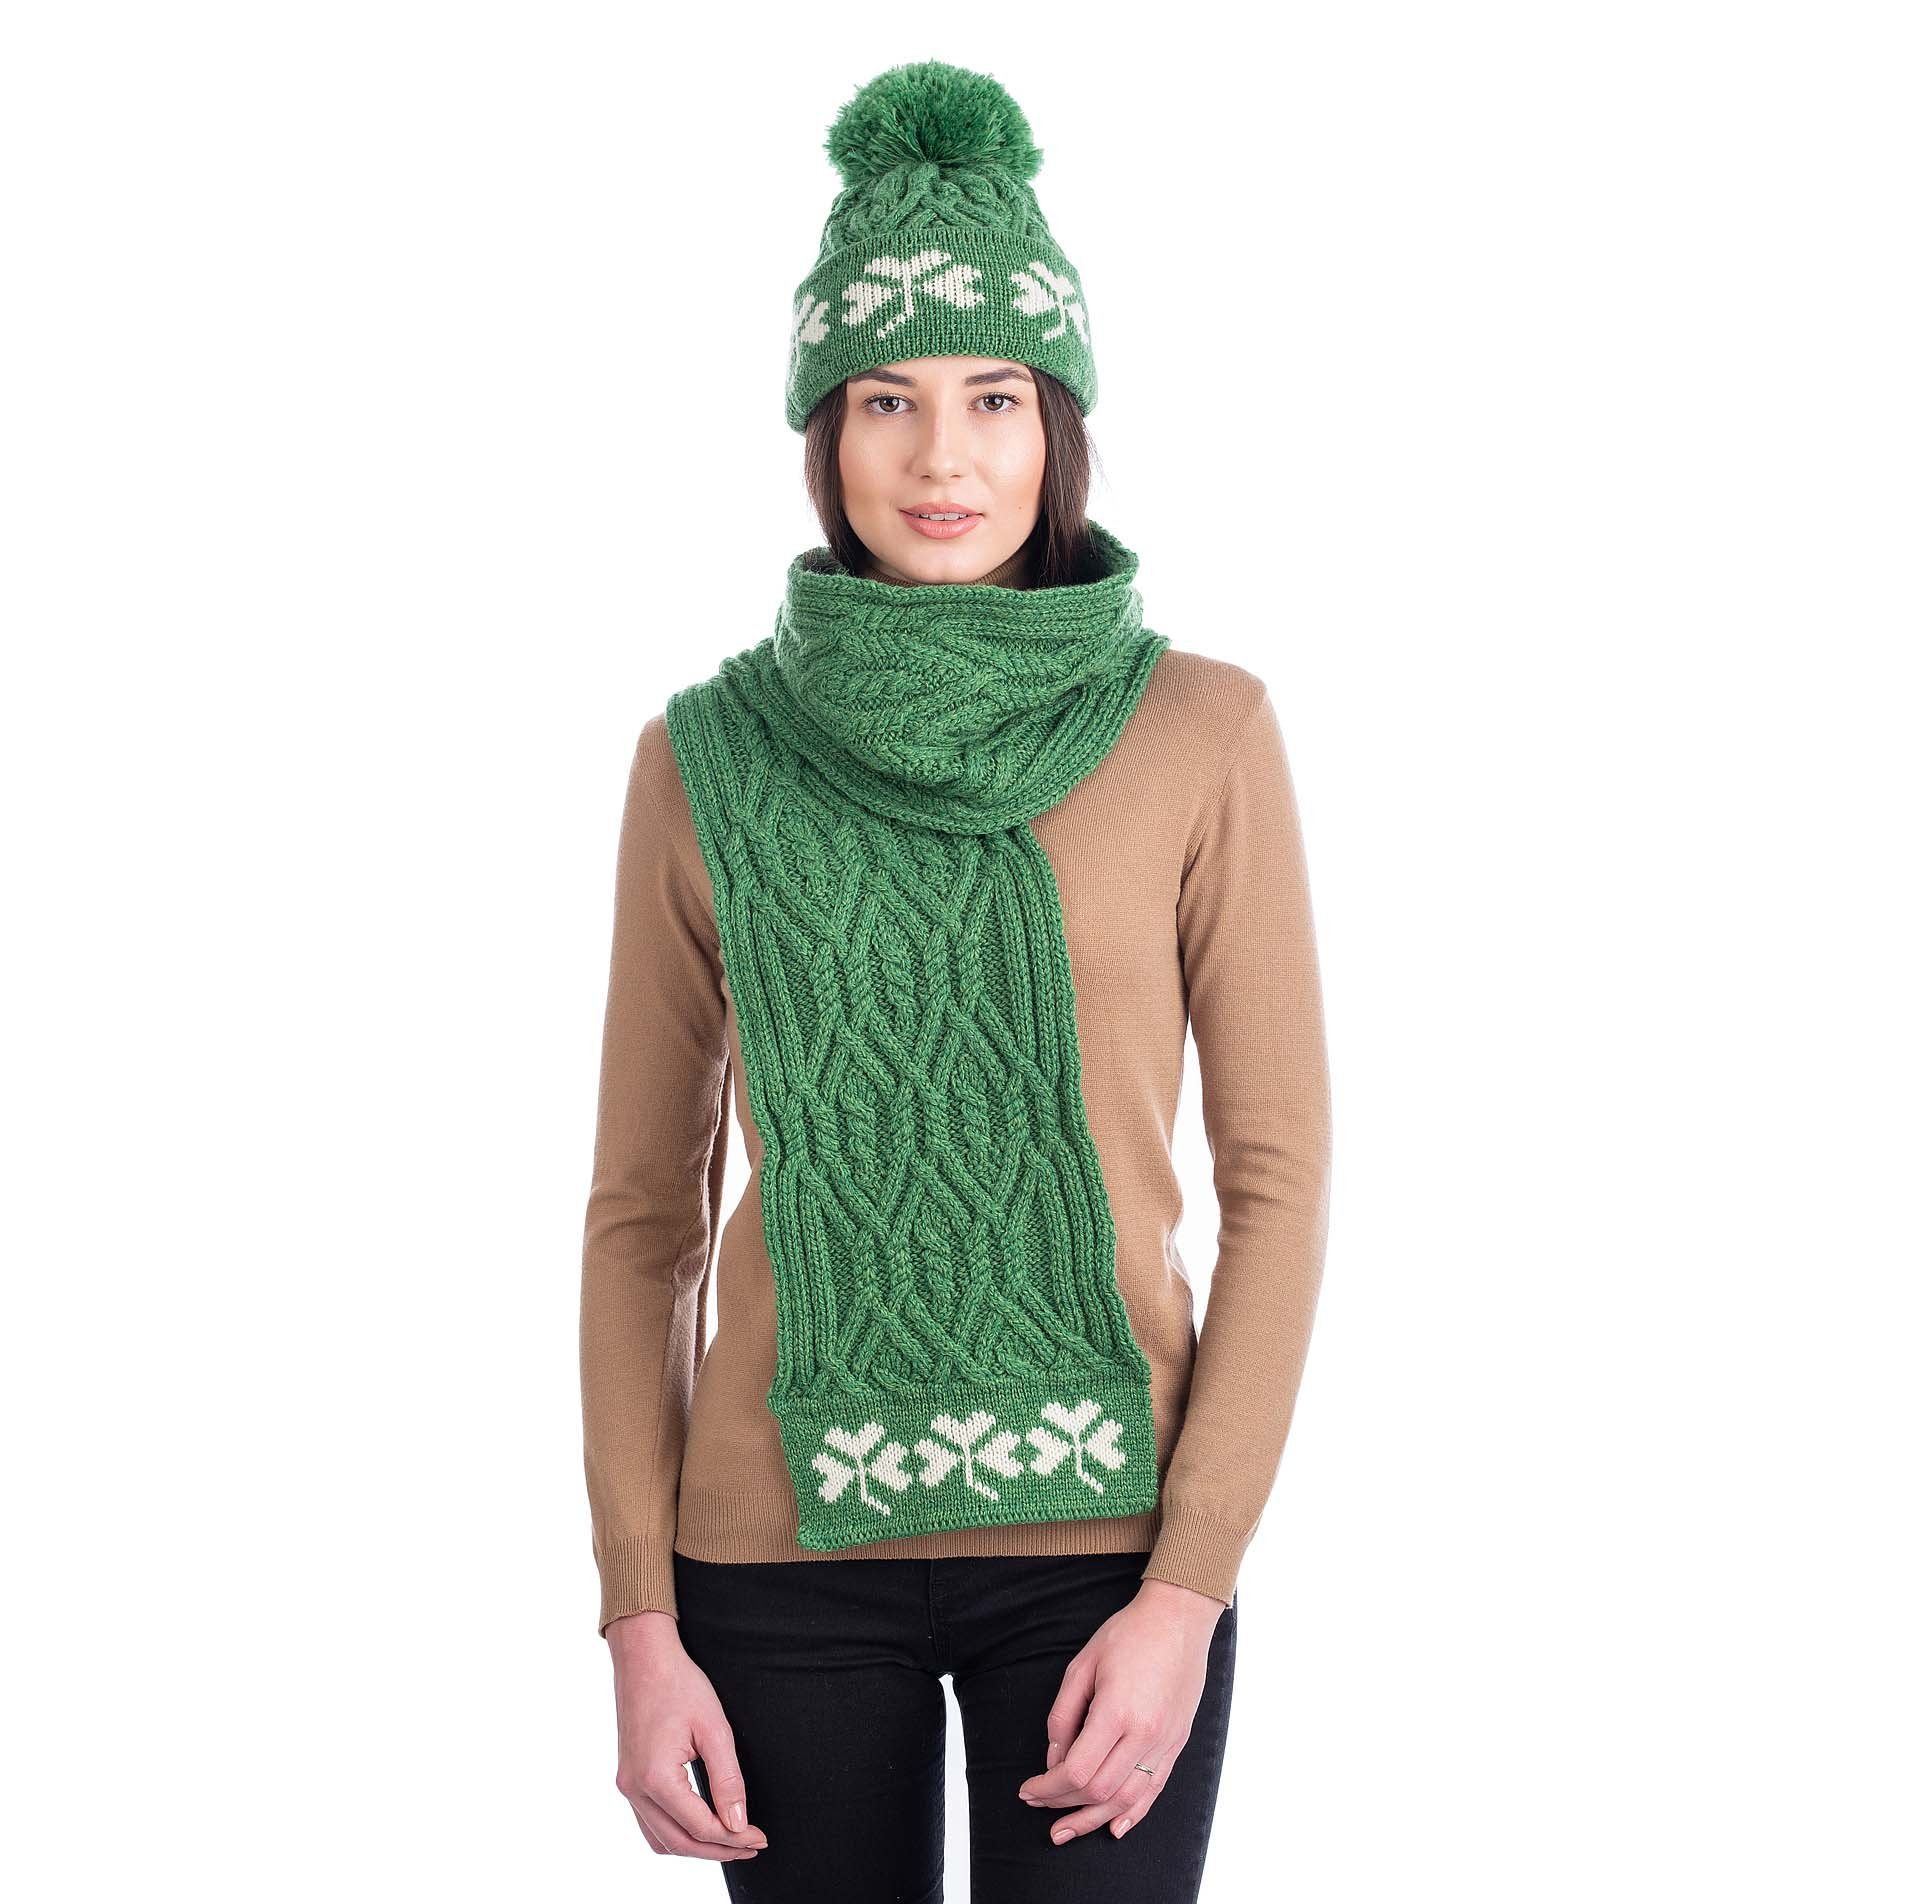 Irish Scarf | Celtic Tree of Life Merino Shamrock Aran Knit Ladies Scarf